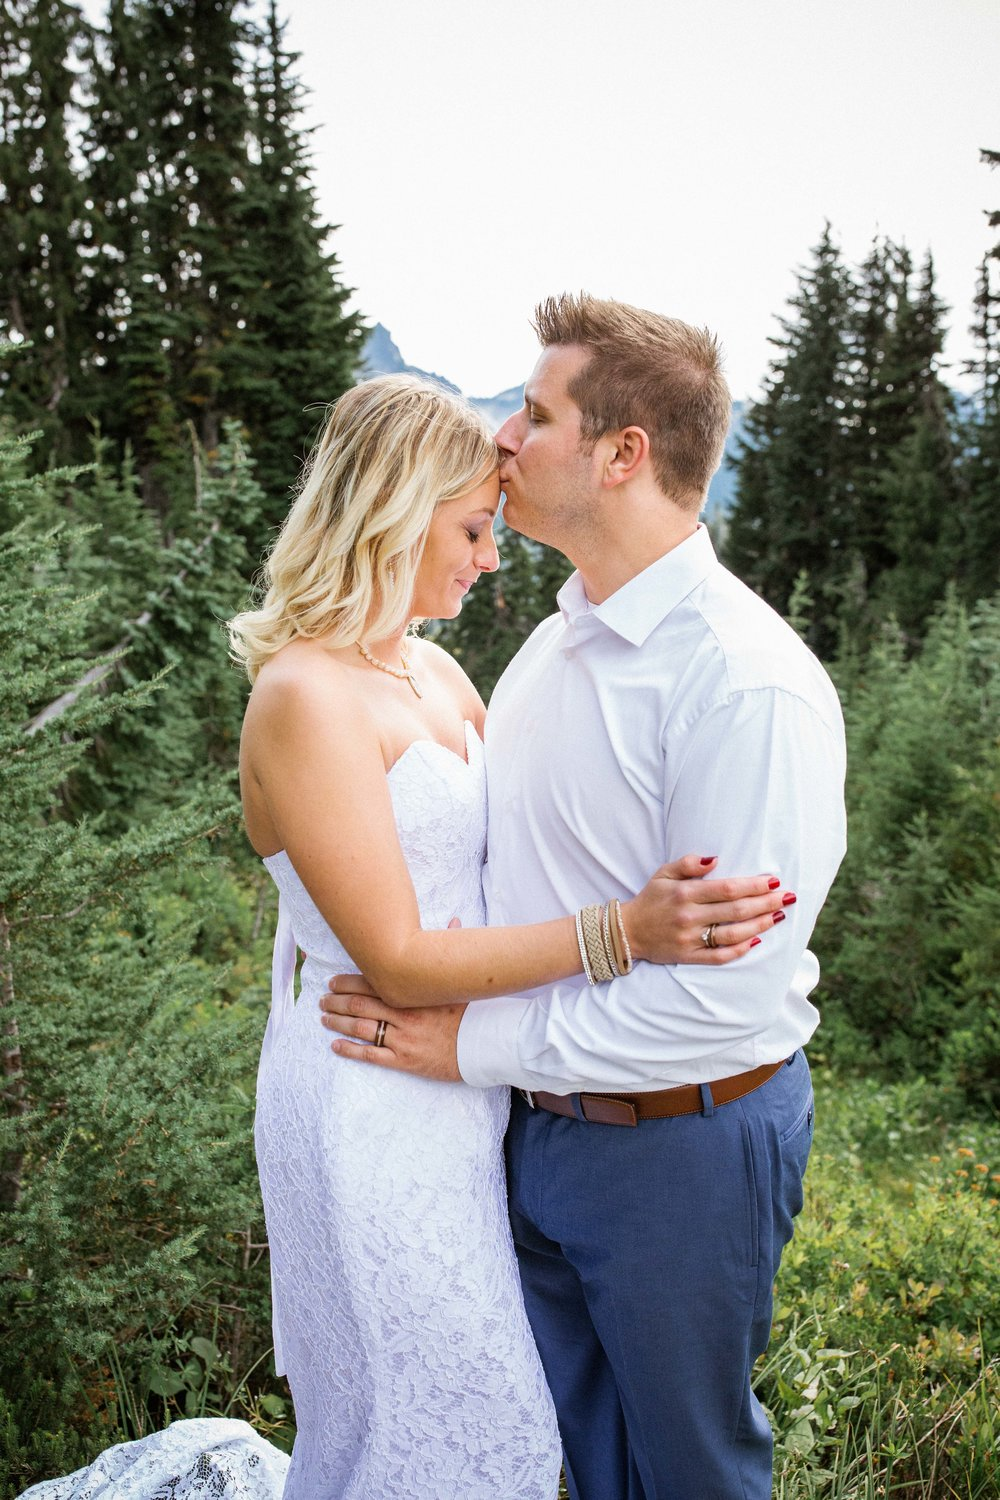 Ashley&Josh-Sneak Peek!BLOG-57.jpg